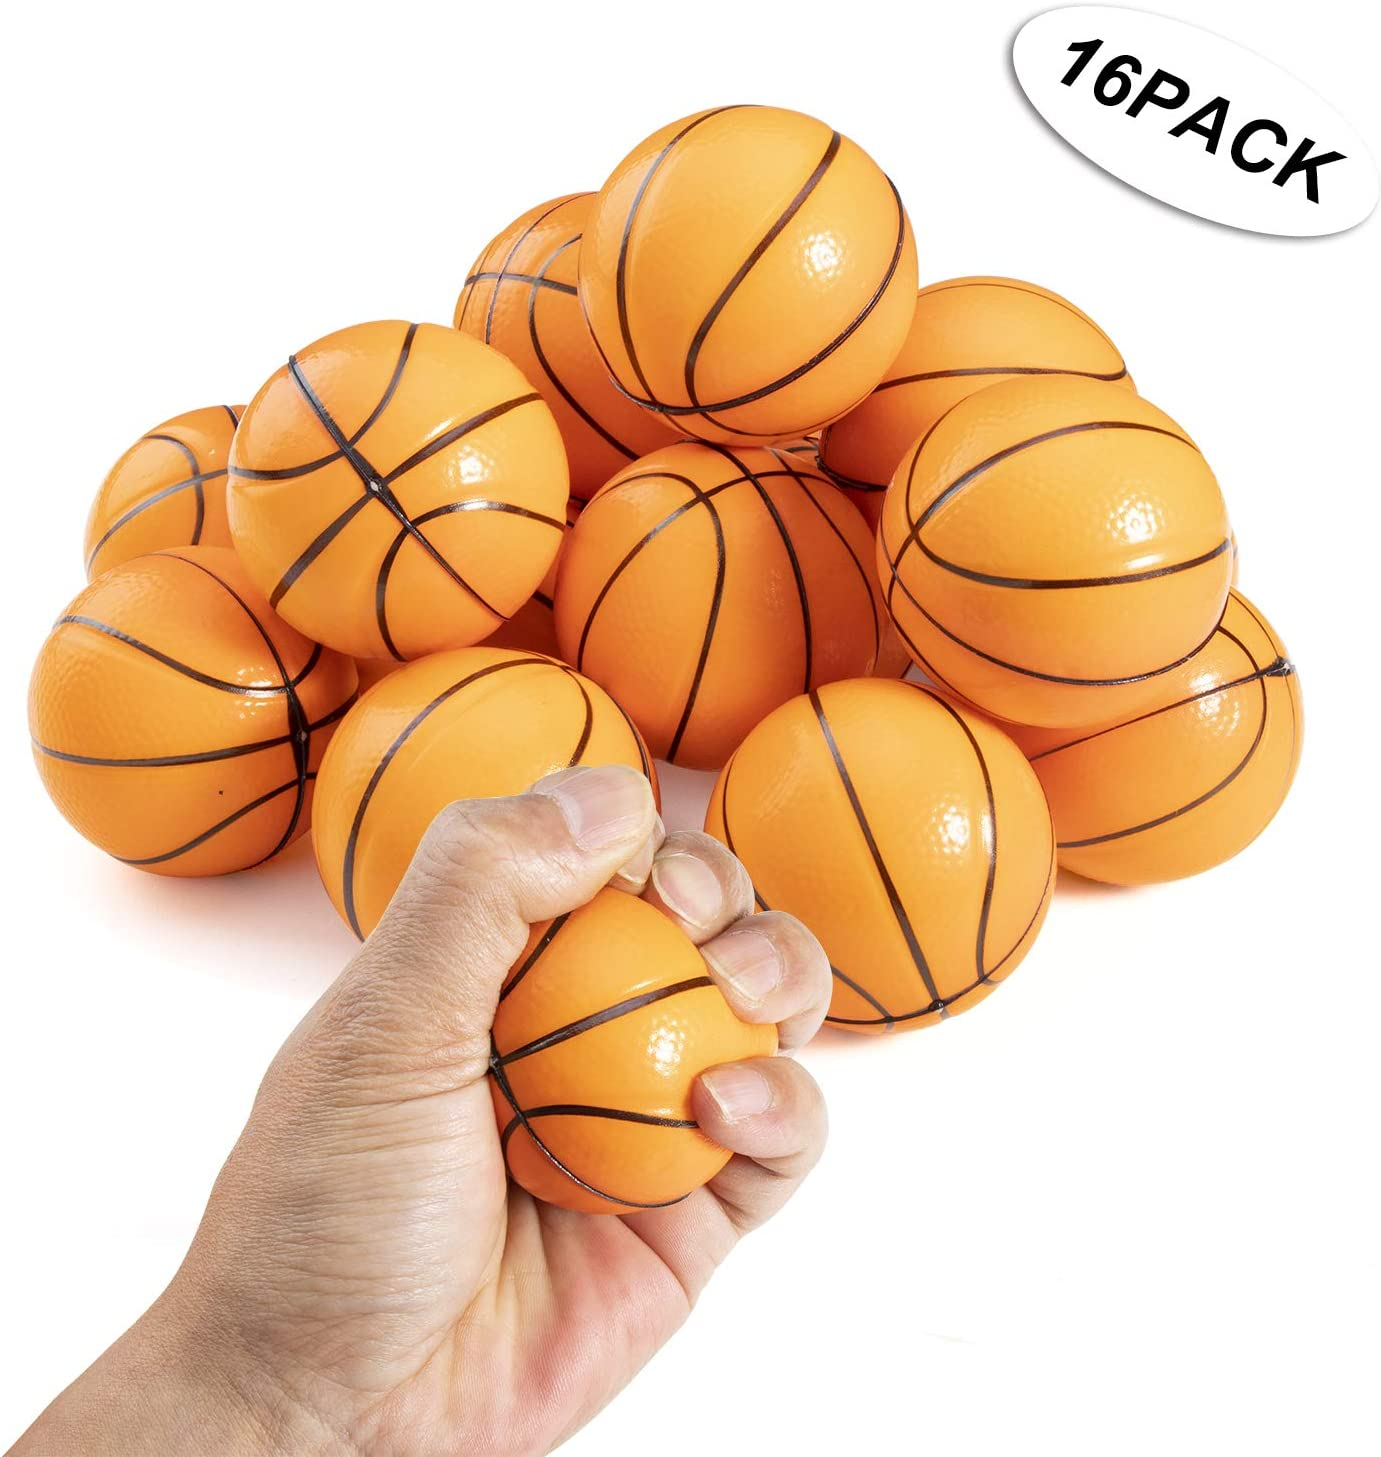 2.5 Inch Mini Foam Basketballs Fun Stress Reliever Toy for Kids Prizes and Party Favors Basketball Stress Balls Pack of 12 SN Incorp